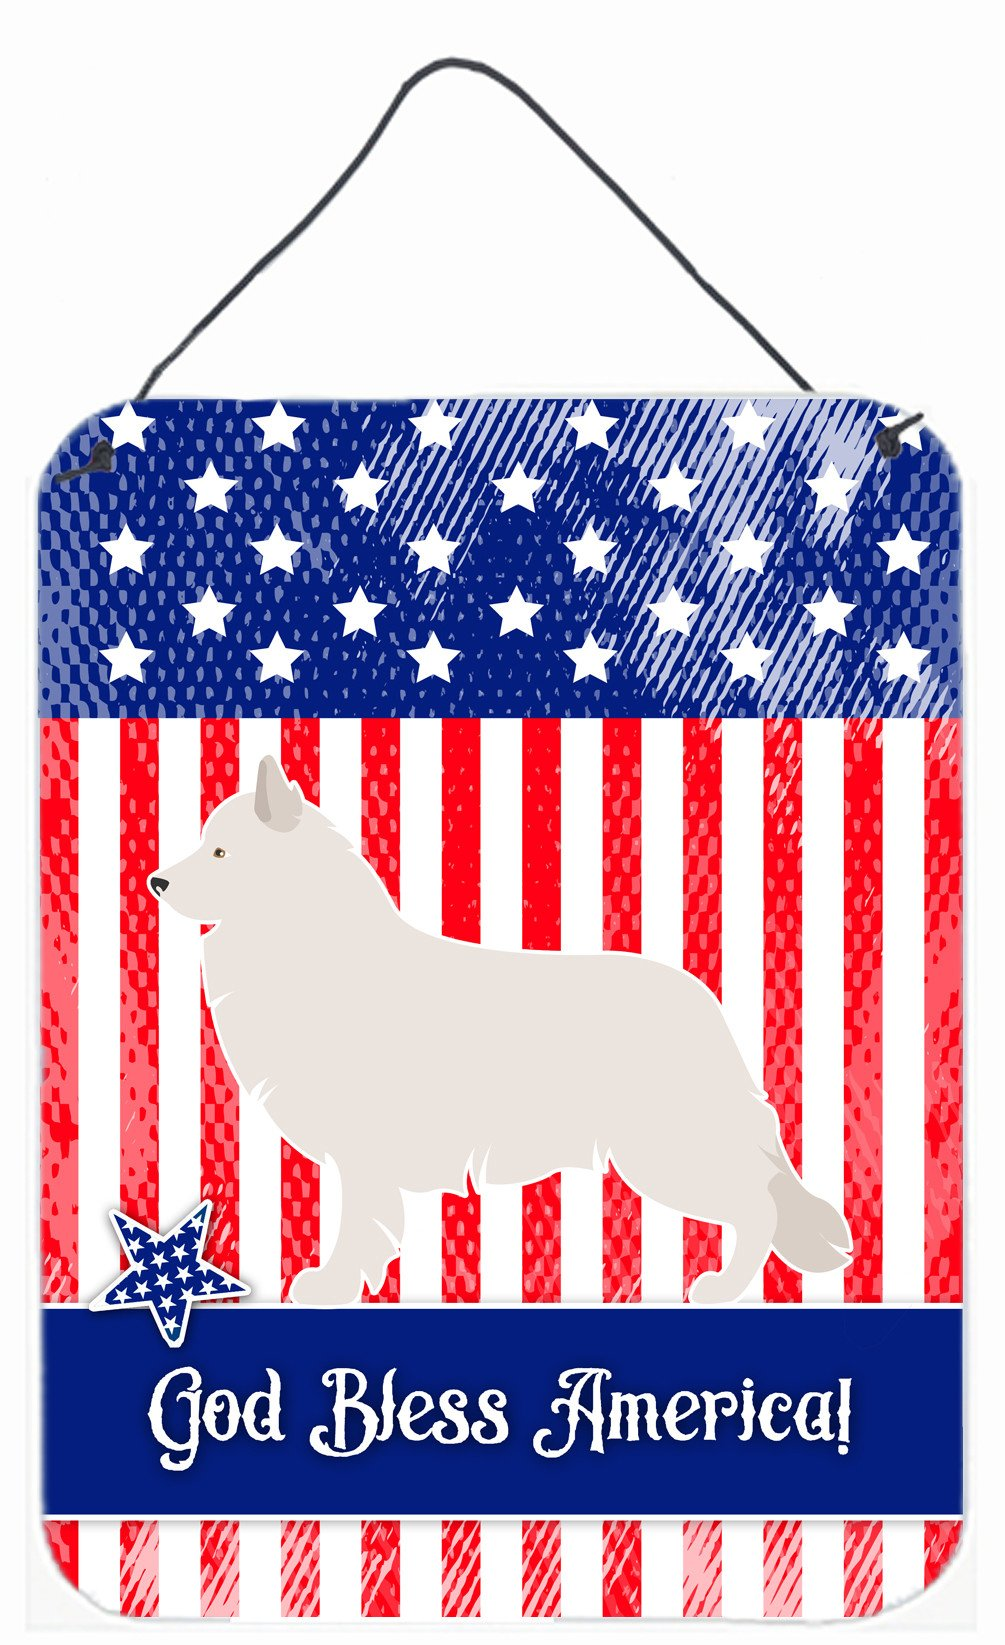 Berger Blanc Suisse American Wall or Door Hanging Prints BB8373DS1216 by Caroline's Treasures